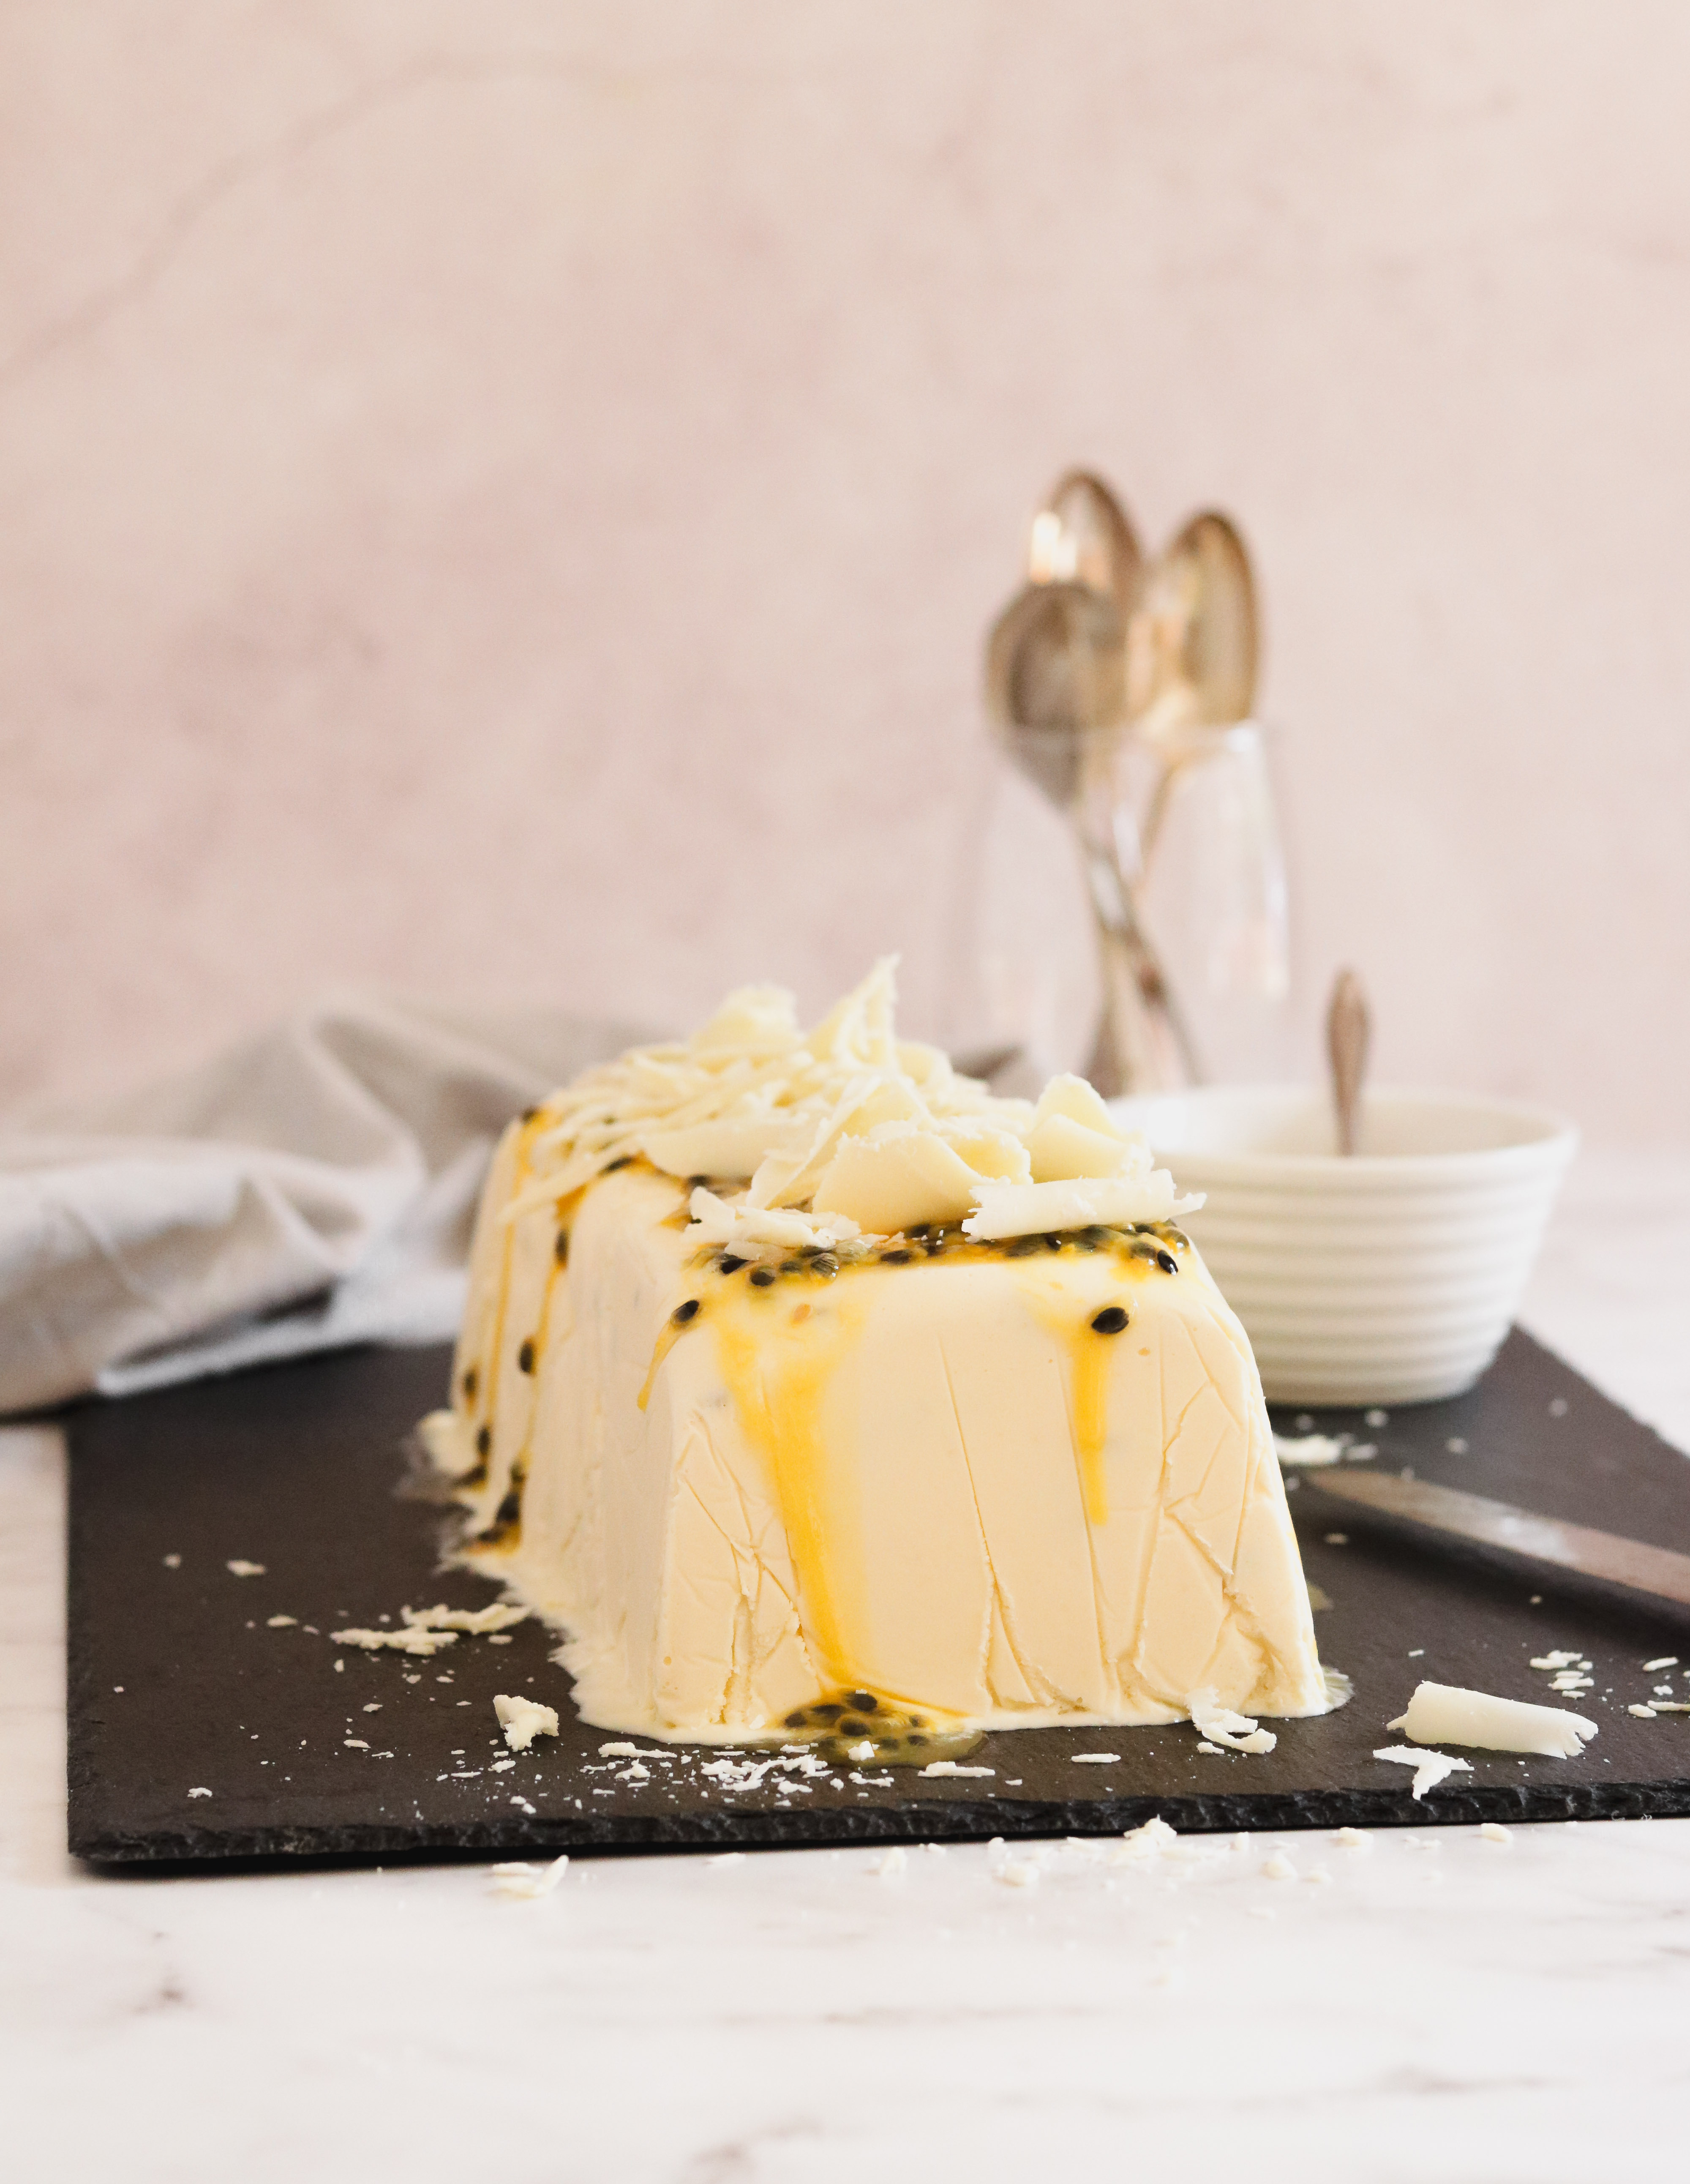 White chocolate and granadilla semifreddo